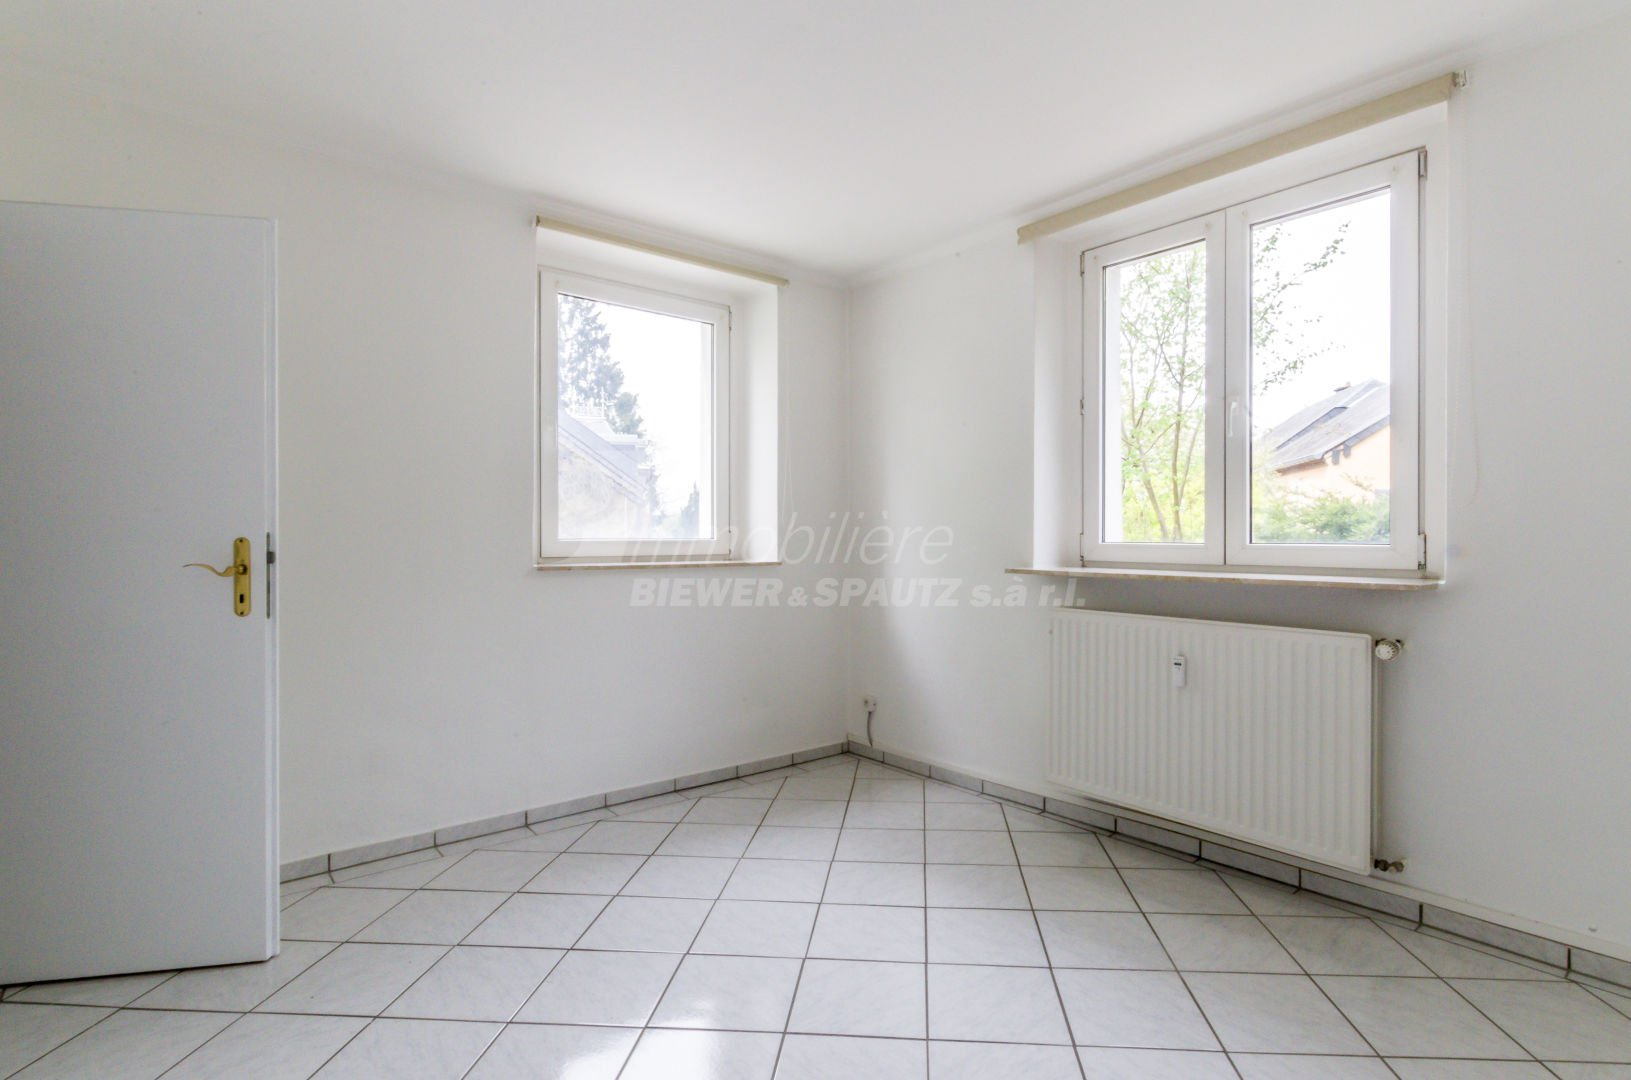 Sale Apartment - Saeul - Luxembourg